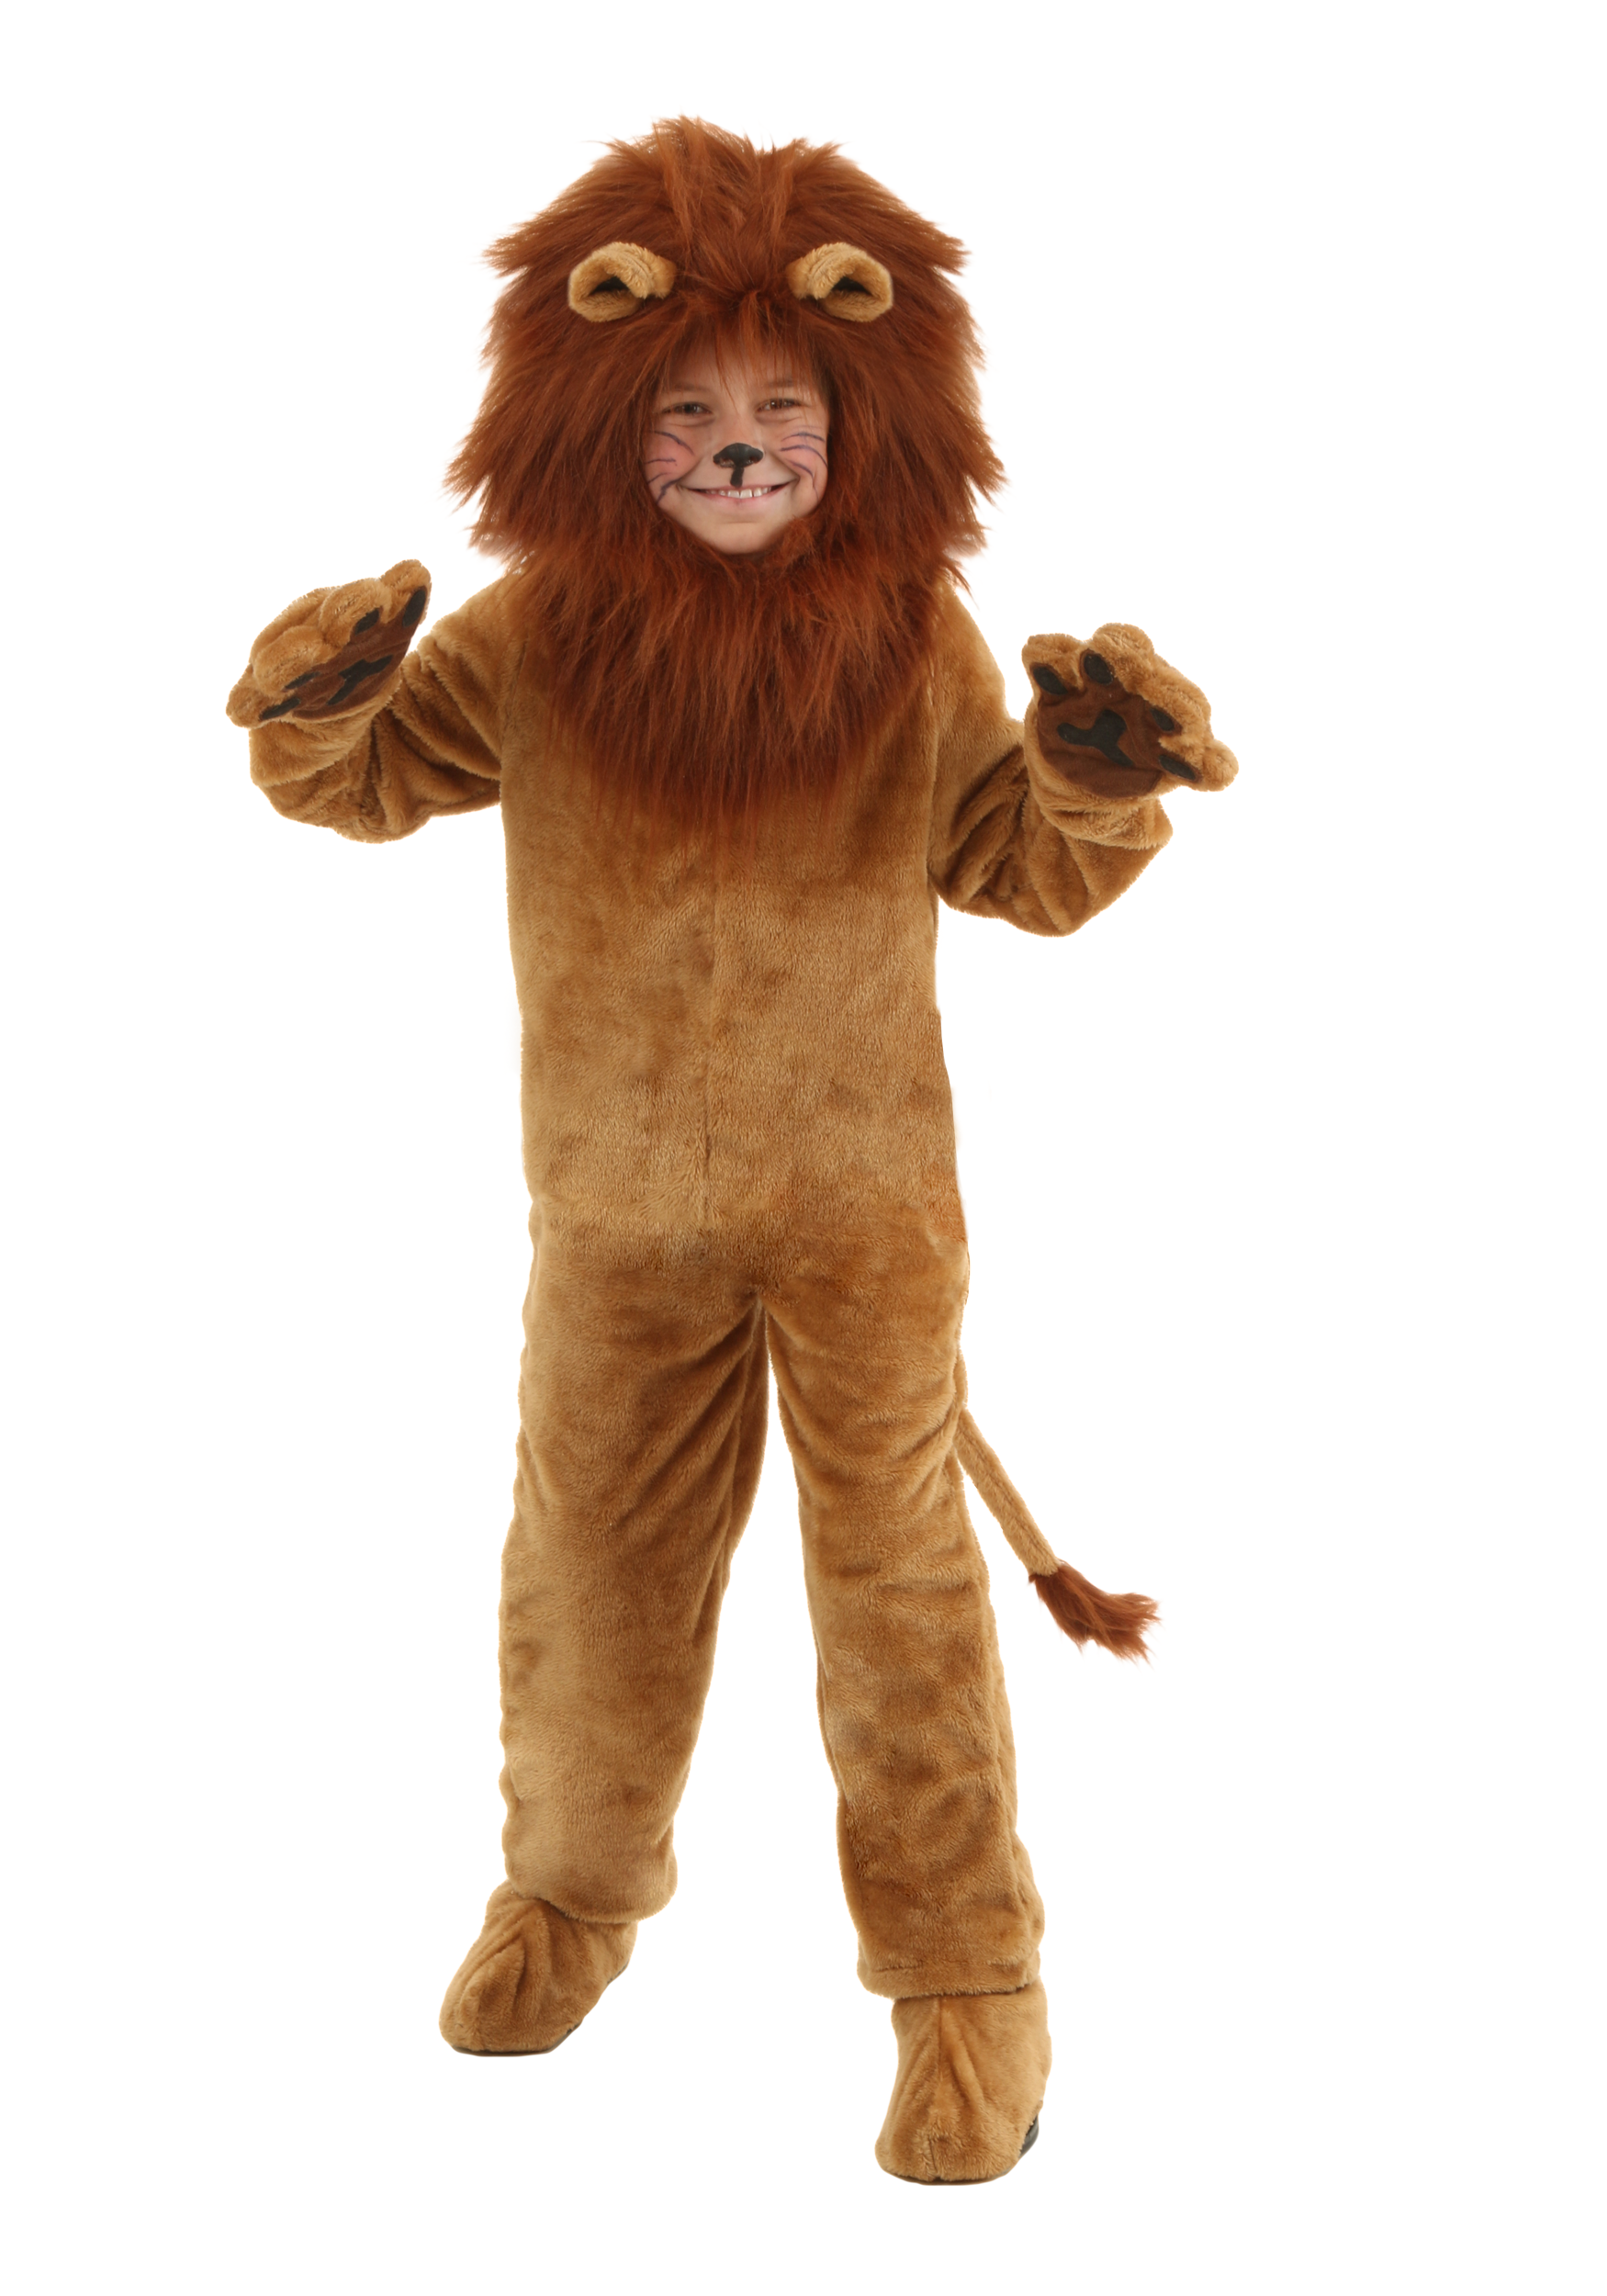 Child Deluxe Lion Costume  sc 1 st  Halloween Costumes & Animal Costumes For Adults u0026 Kids - HalloweenCostumes.com